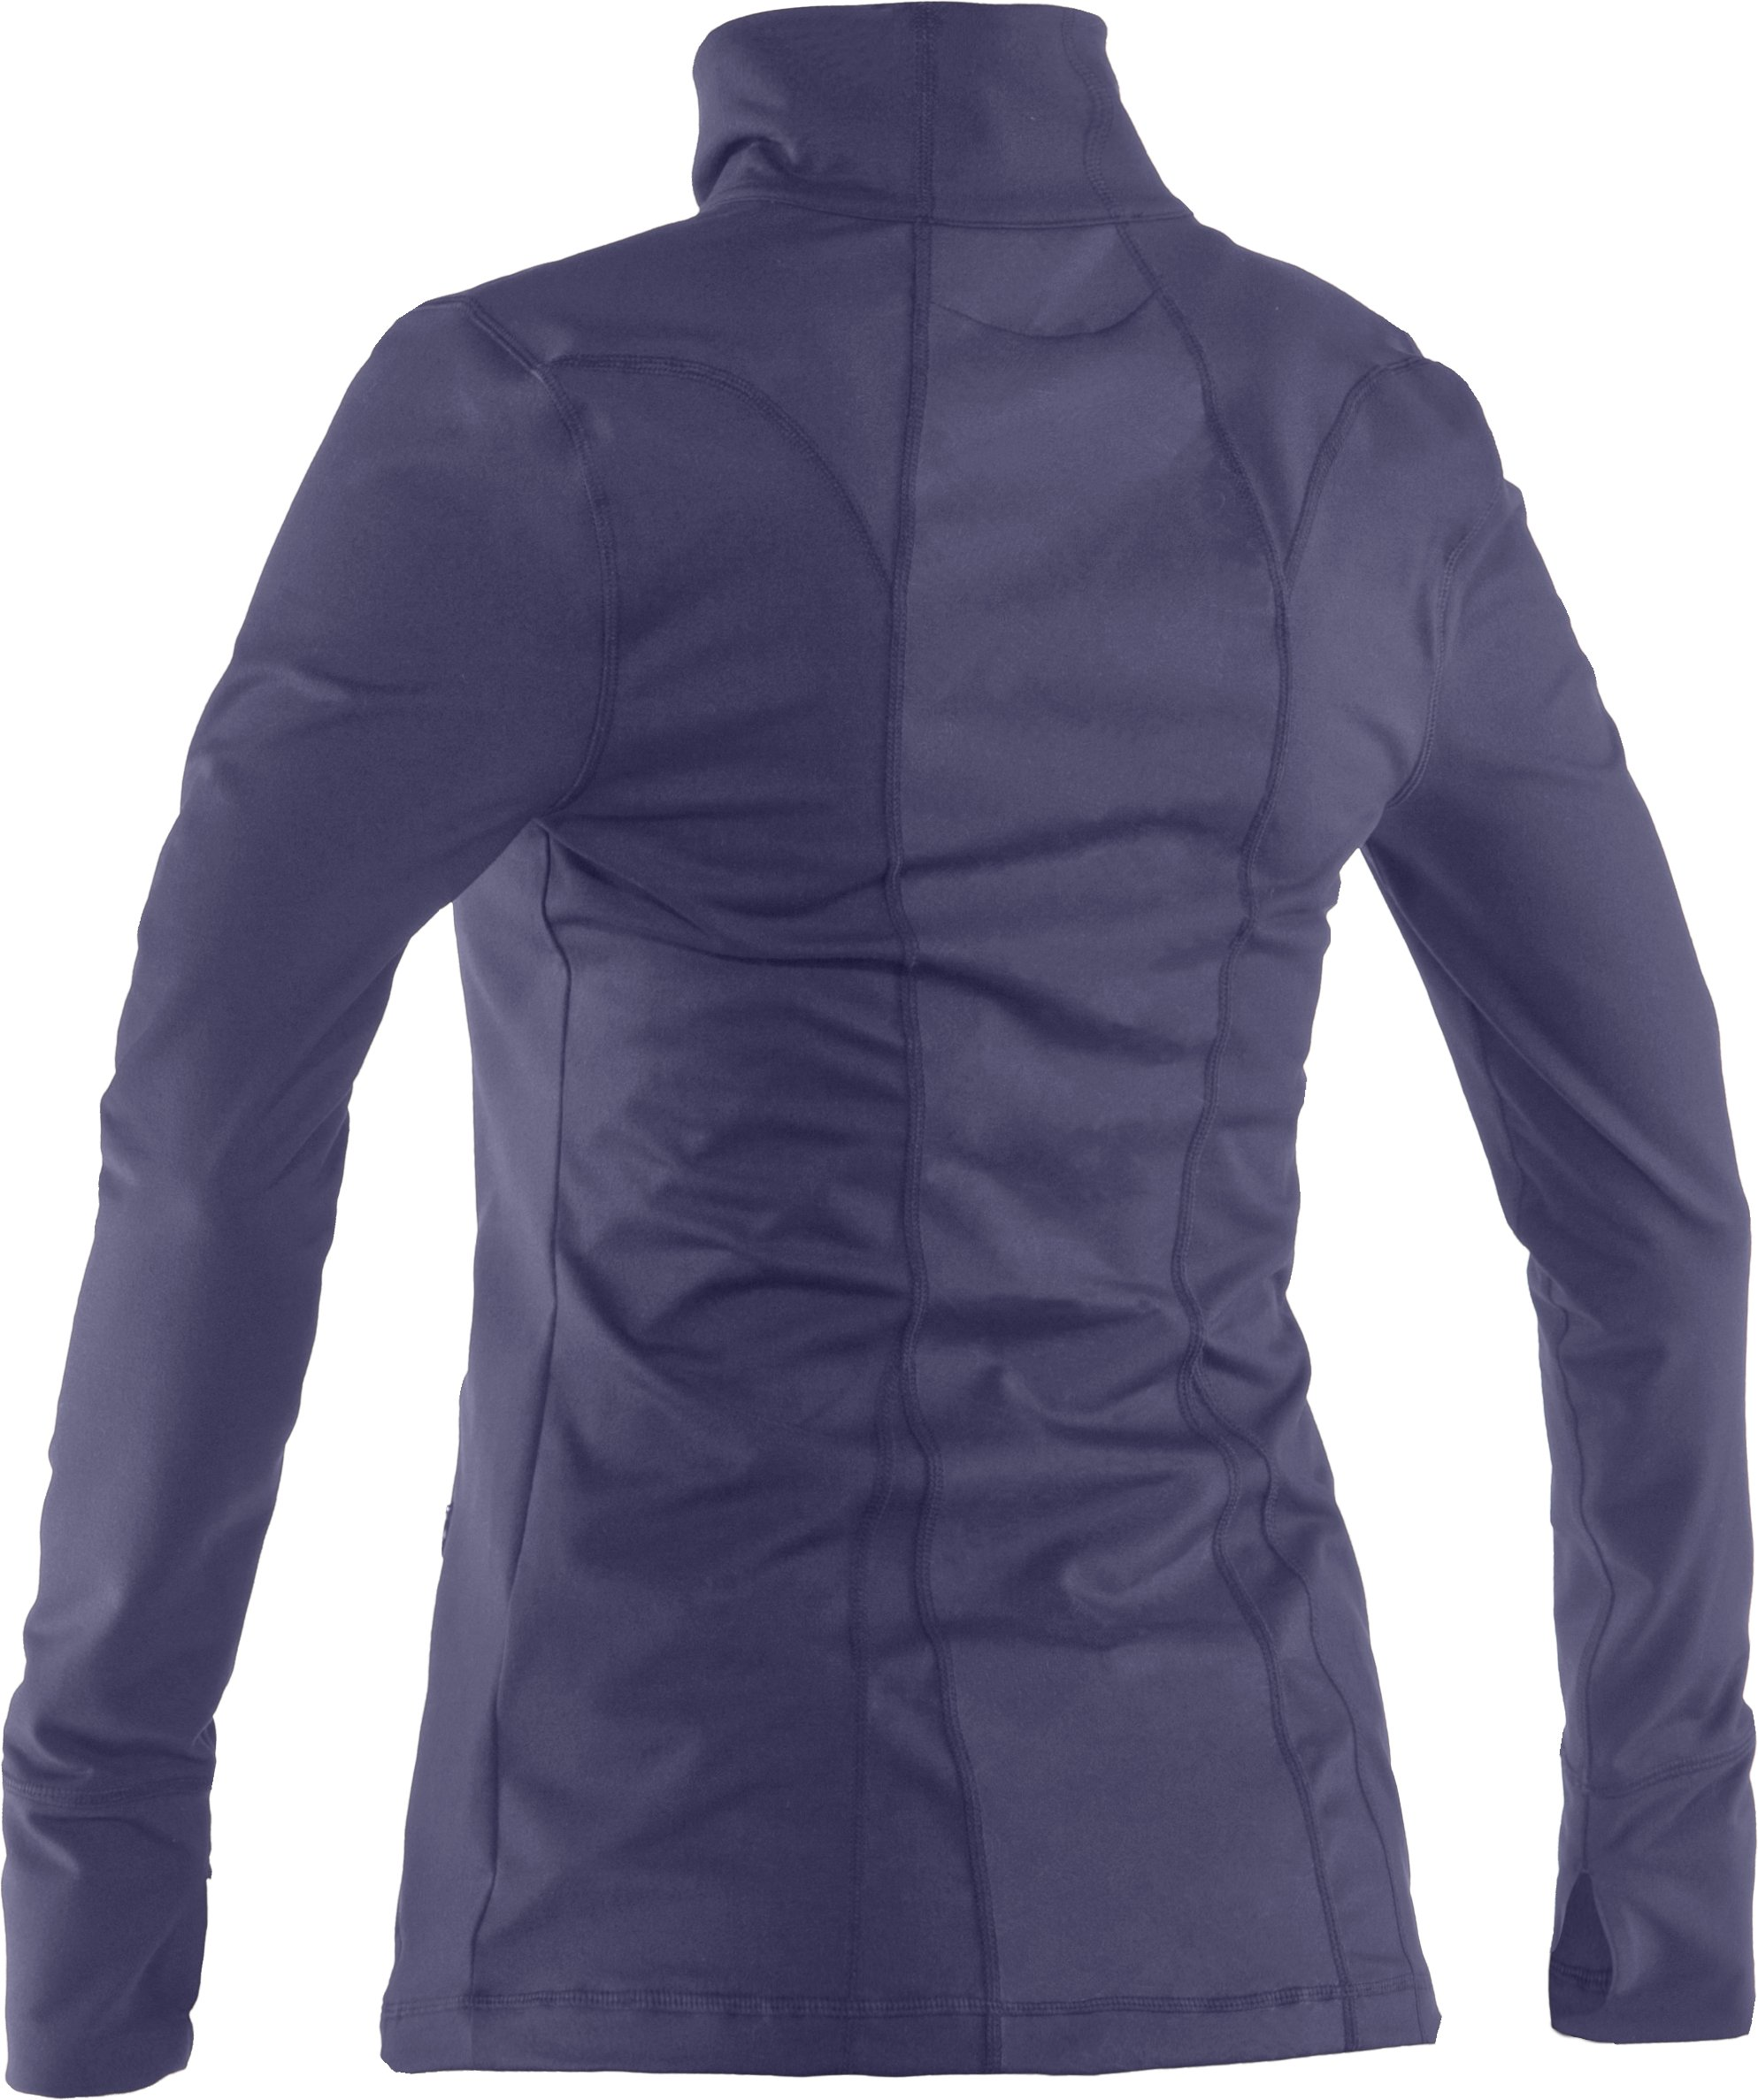 Women's UA StudioLux® Jacket, Starlight, undefined